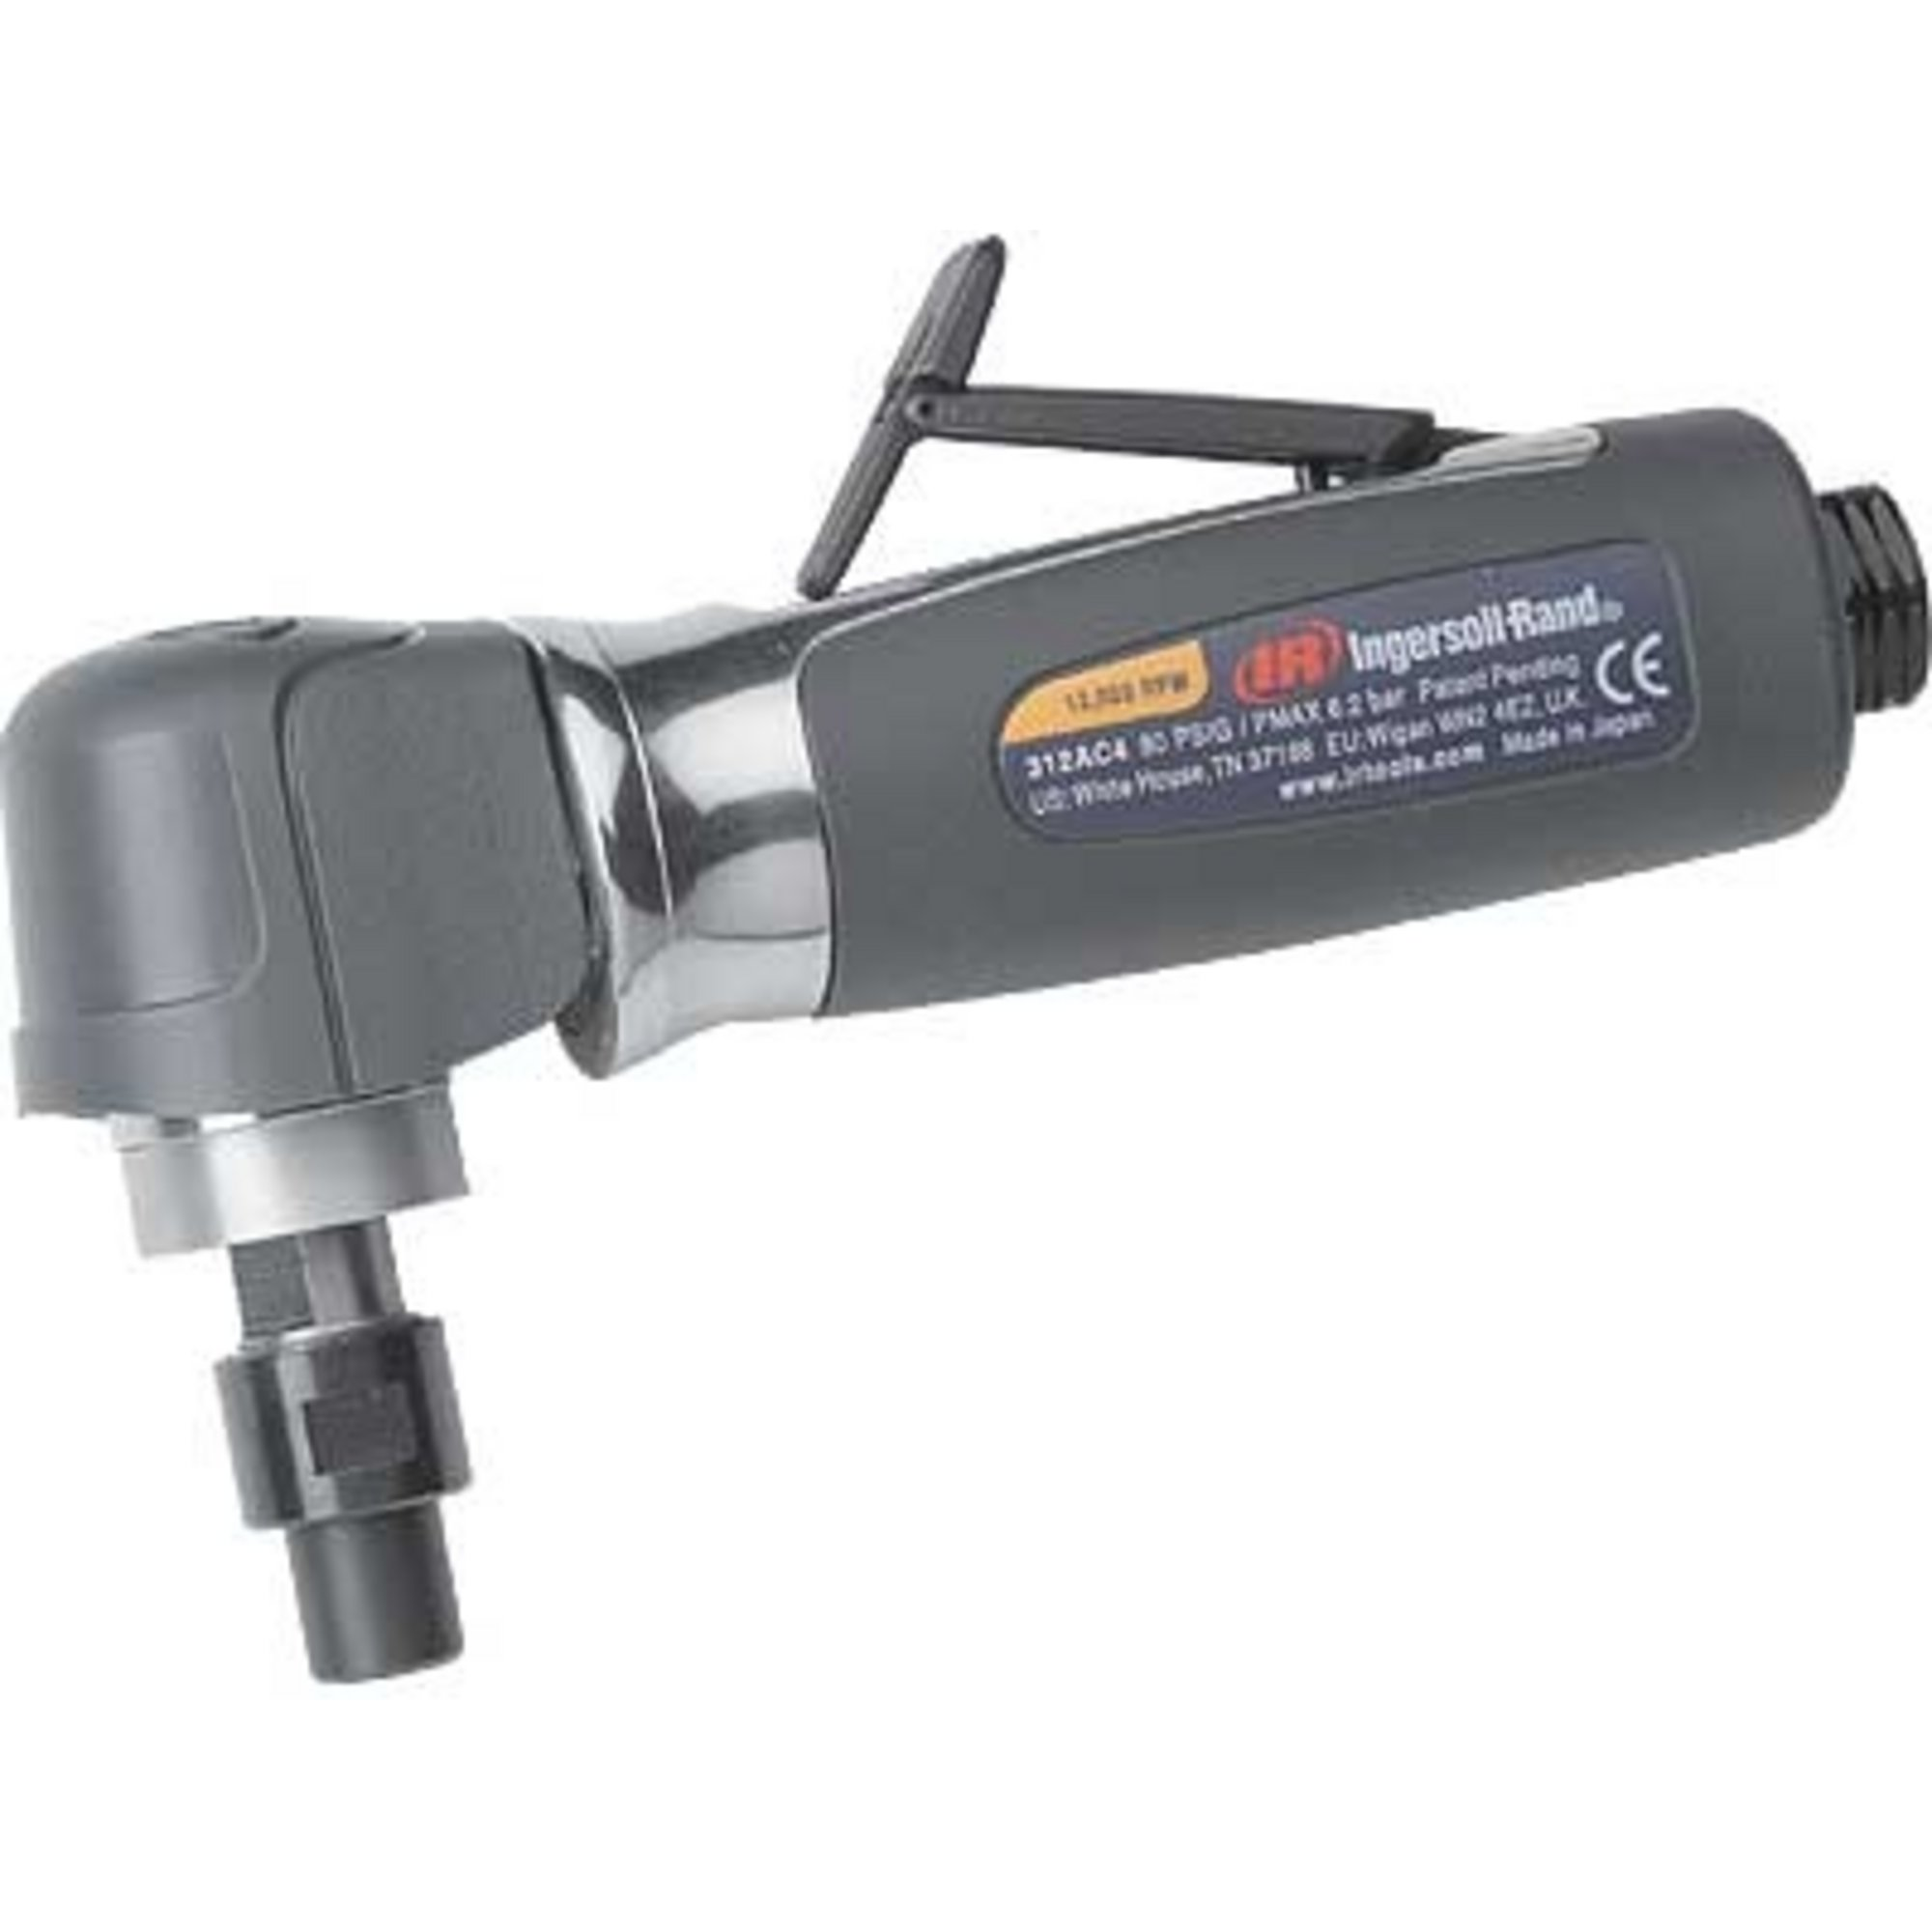 Right Angle Die Grinder Electric ~ Free shipping — ingersoll rand revolution right angle die